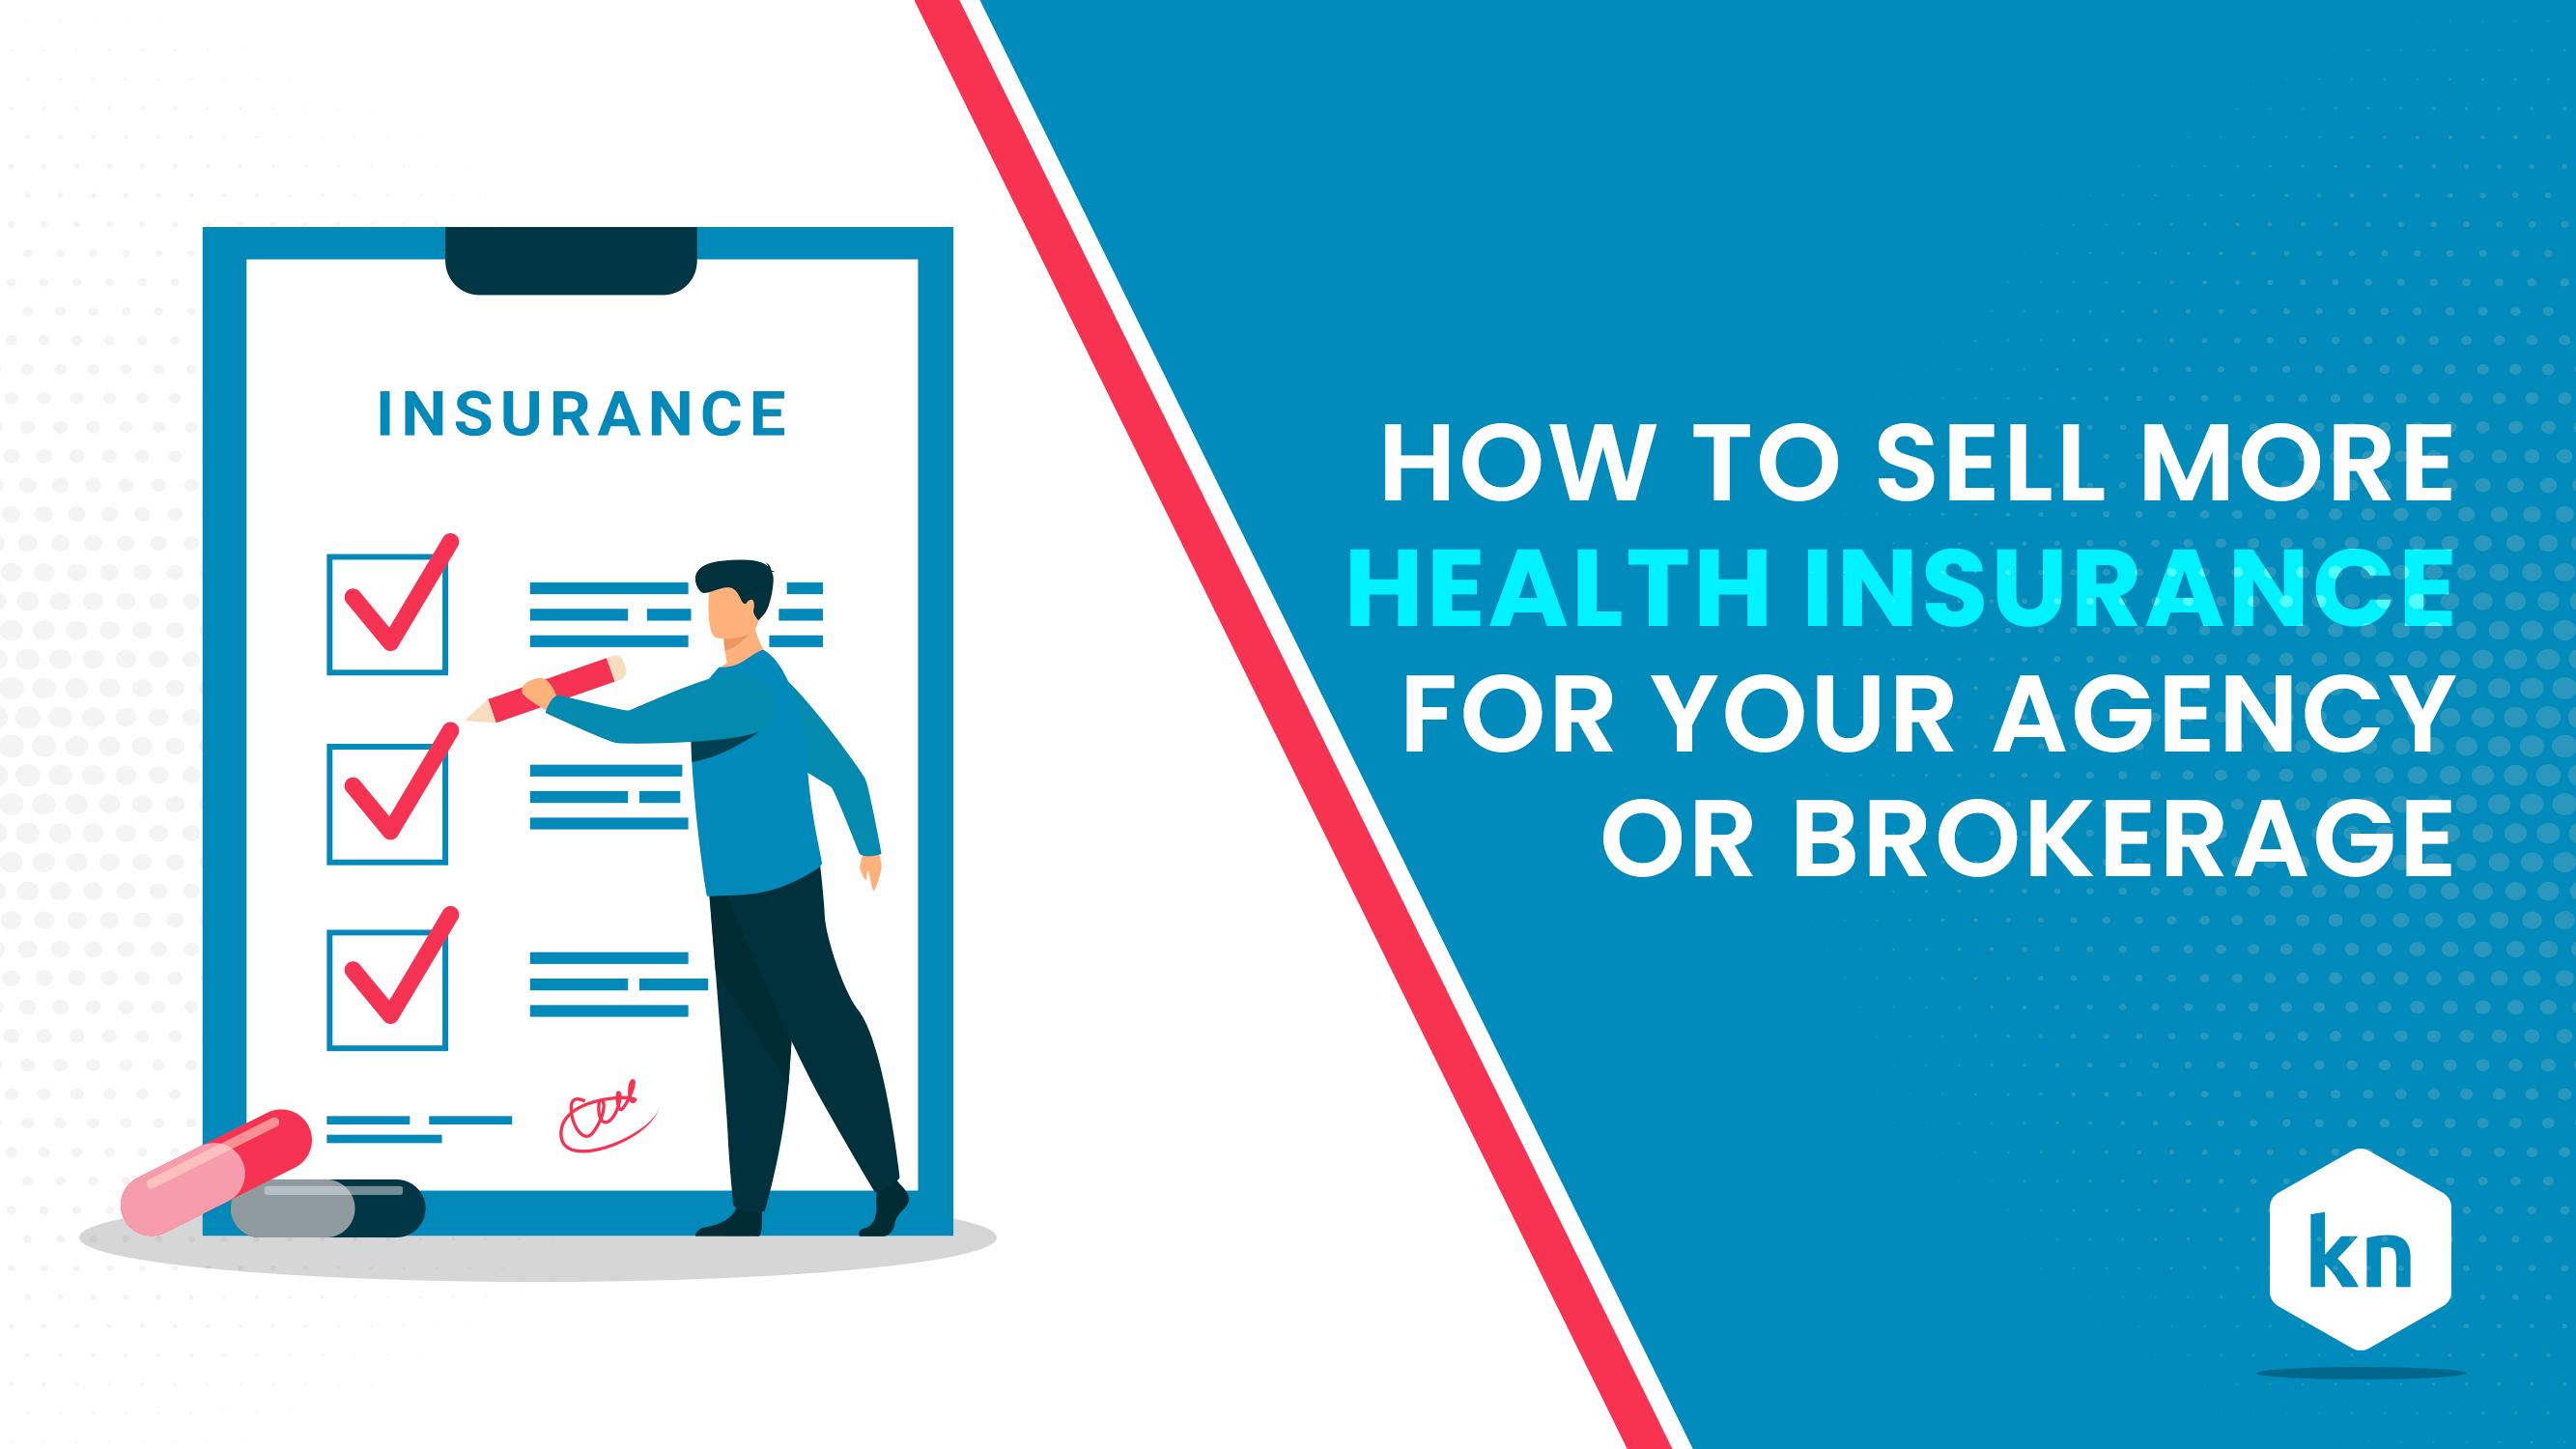 How To Sell More Health Insurance For Your Agency Or Brokerage